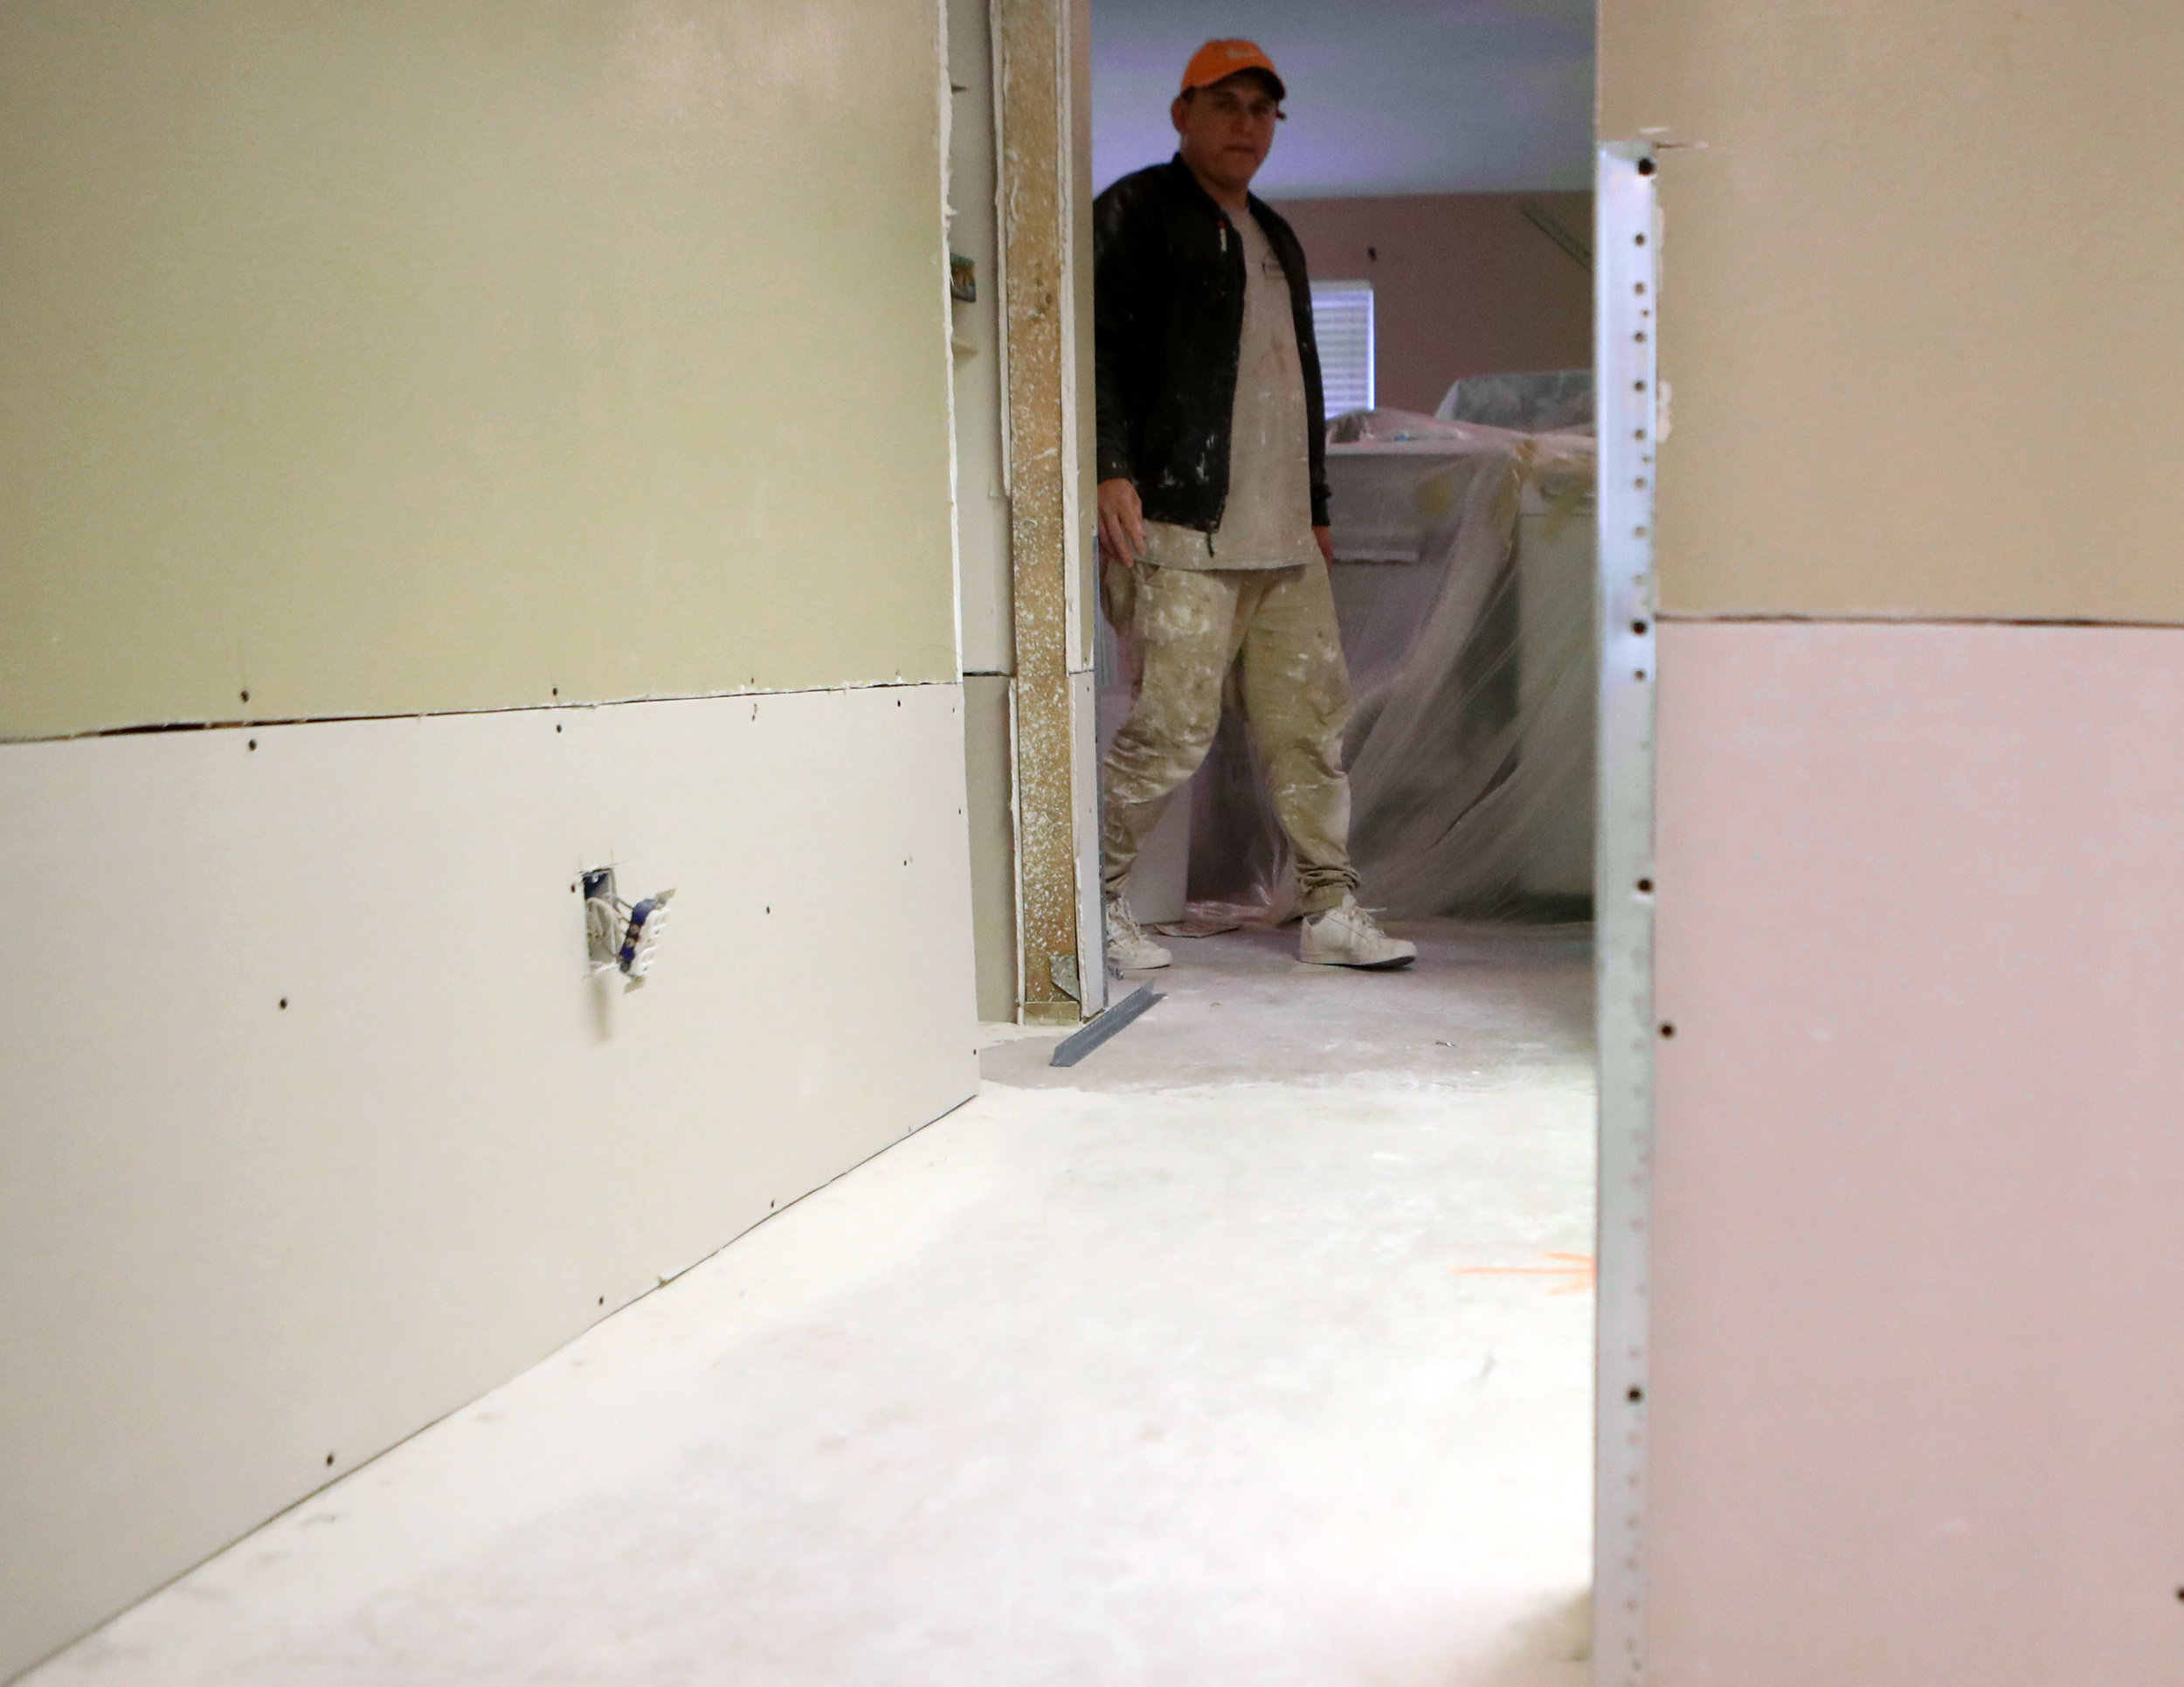 William Campos walks by a hallway with new dry wall while working on the Bishop's home on Tuesday, Jan. 9, 2018. Campos was helping Jesus Lopez with the brunt of the work in the house. It took them about five months to make the inside livable.